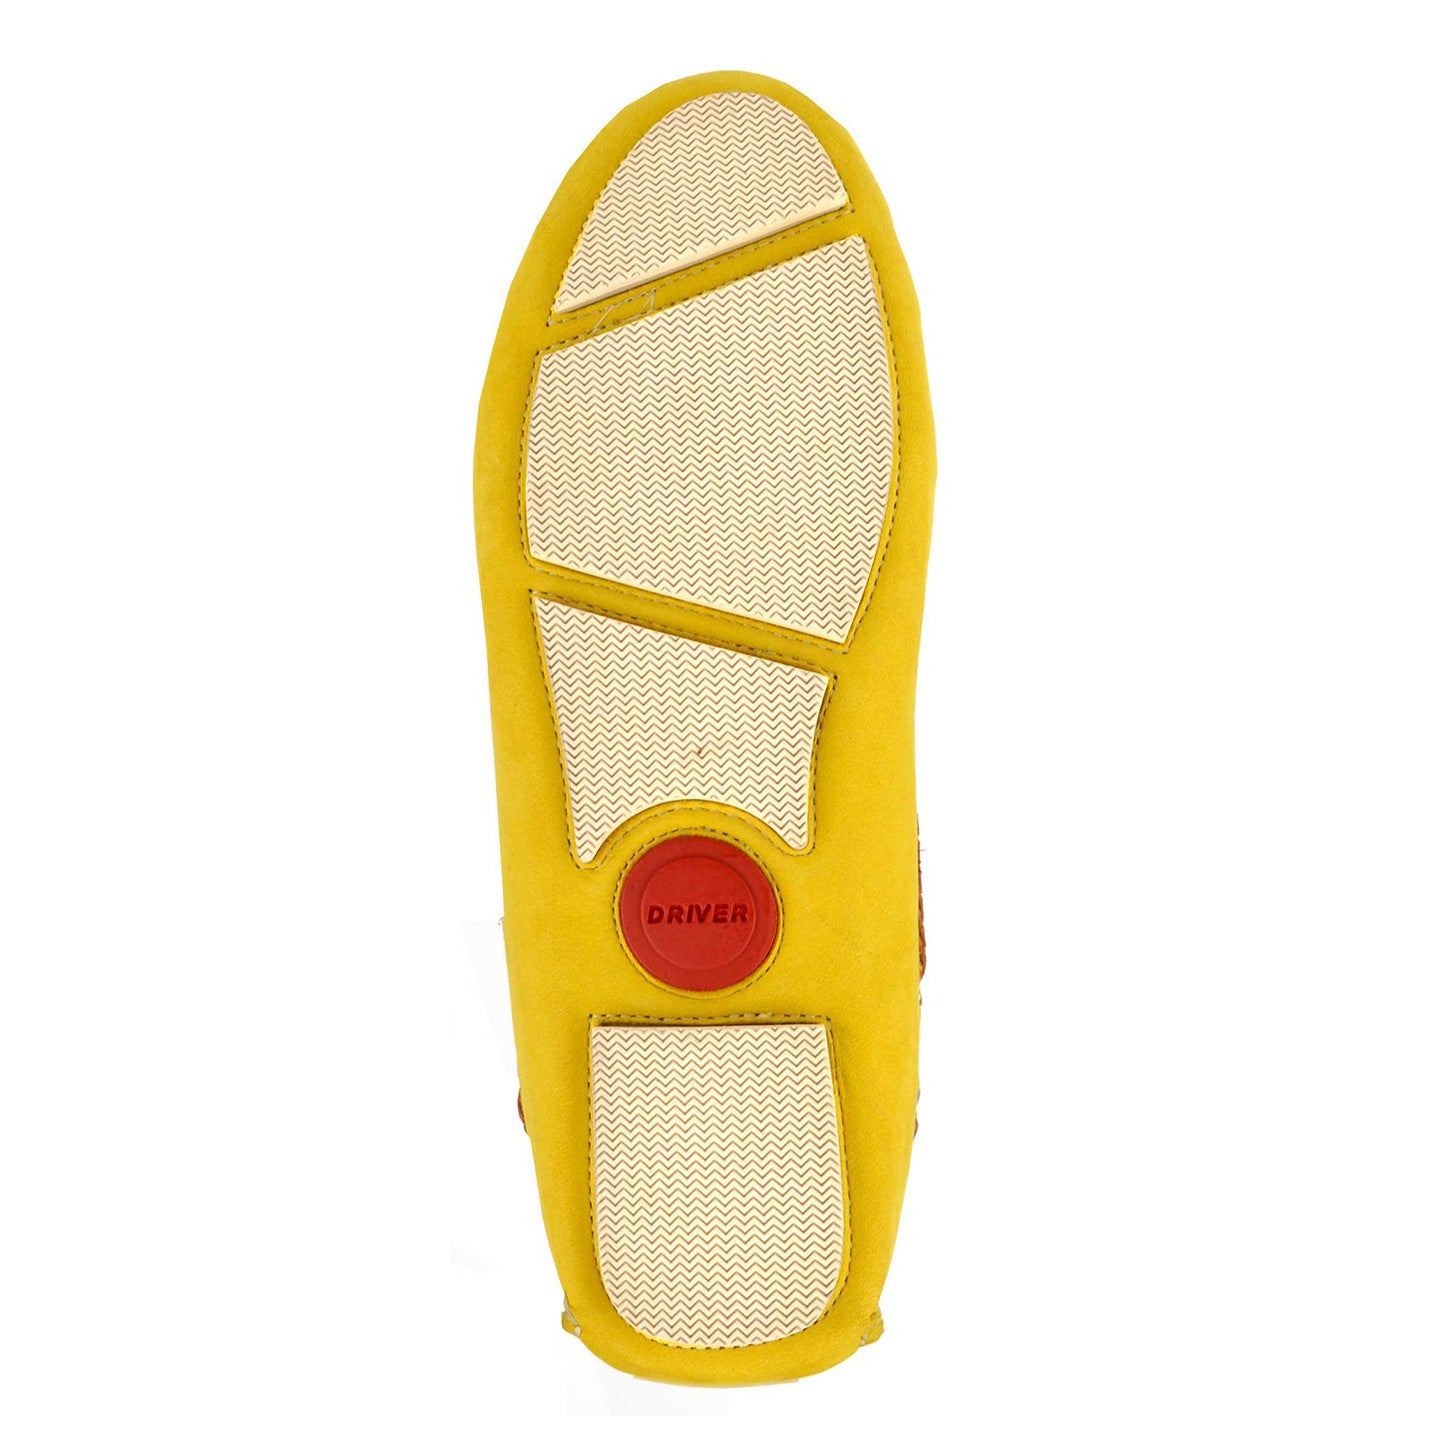 LW031 - Language Rome Women's Casual Yellow Drivers